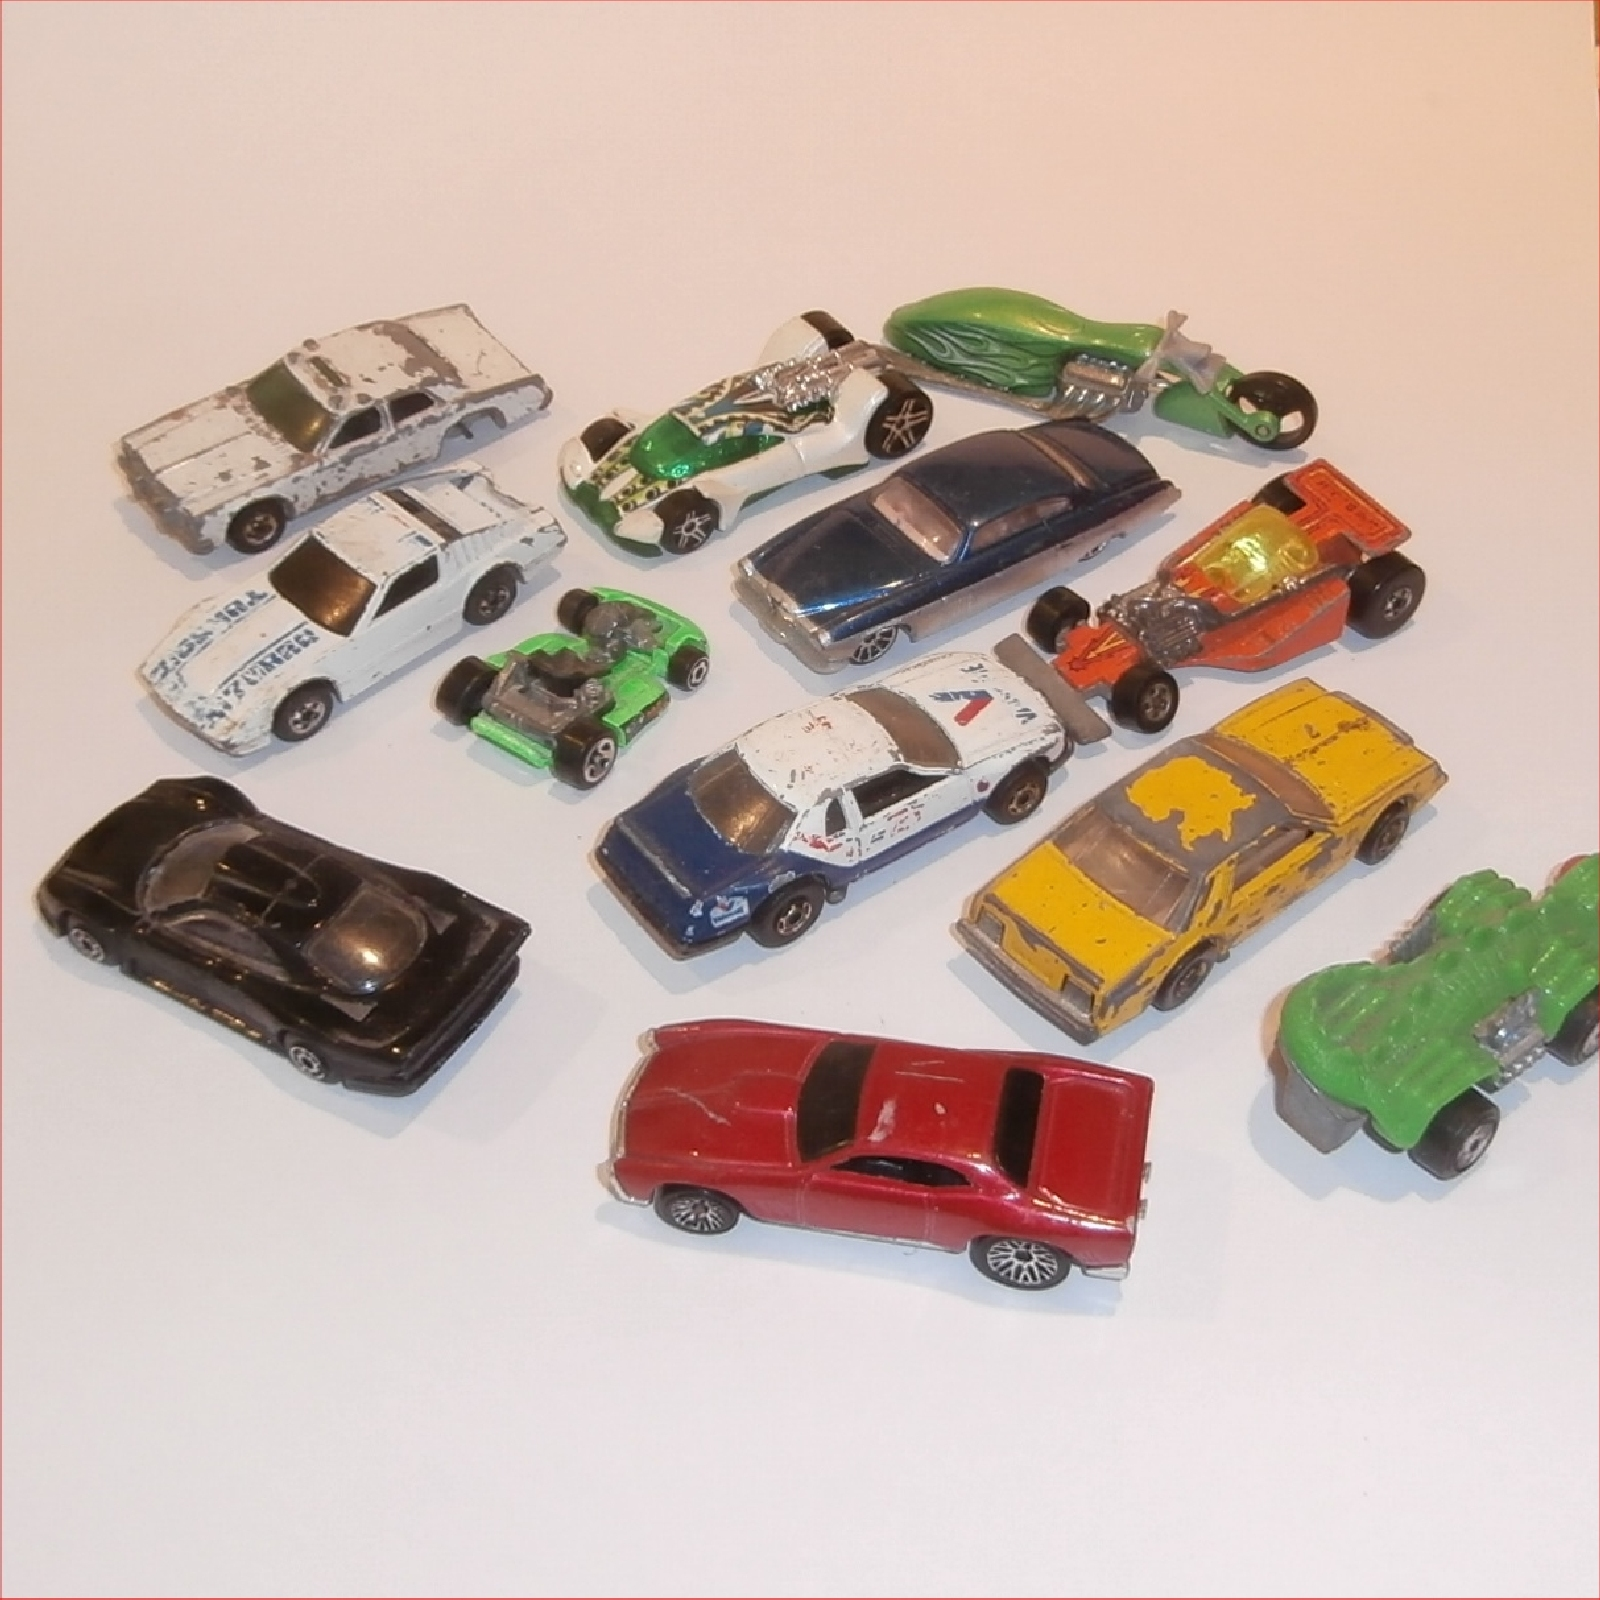 Details about Hotwheels Mattel models Lot of 12 for Spares or Repair